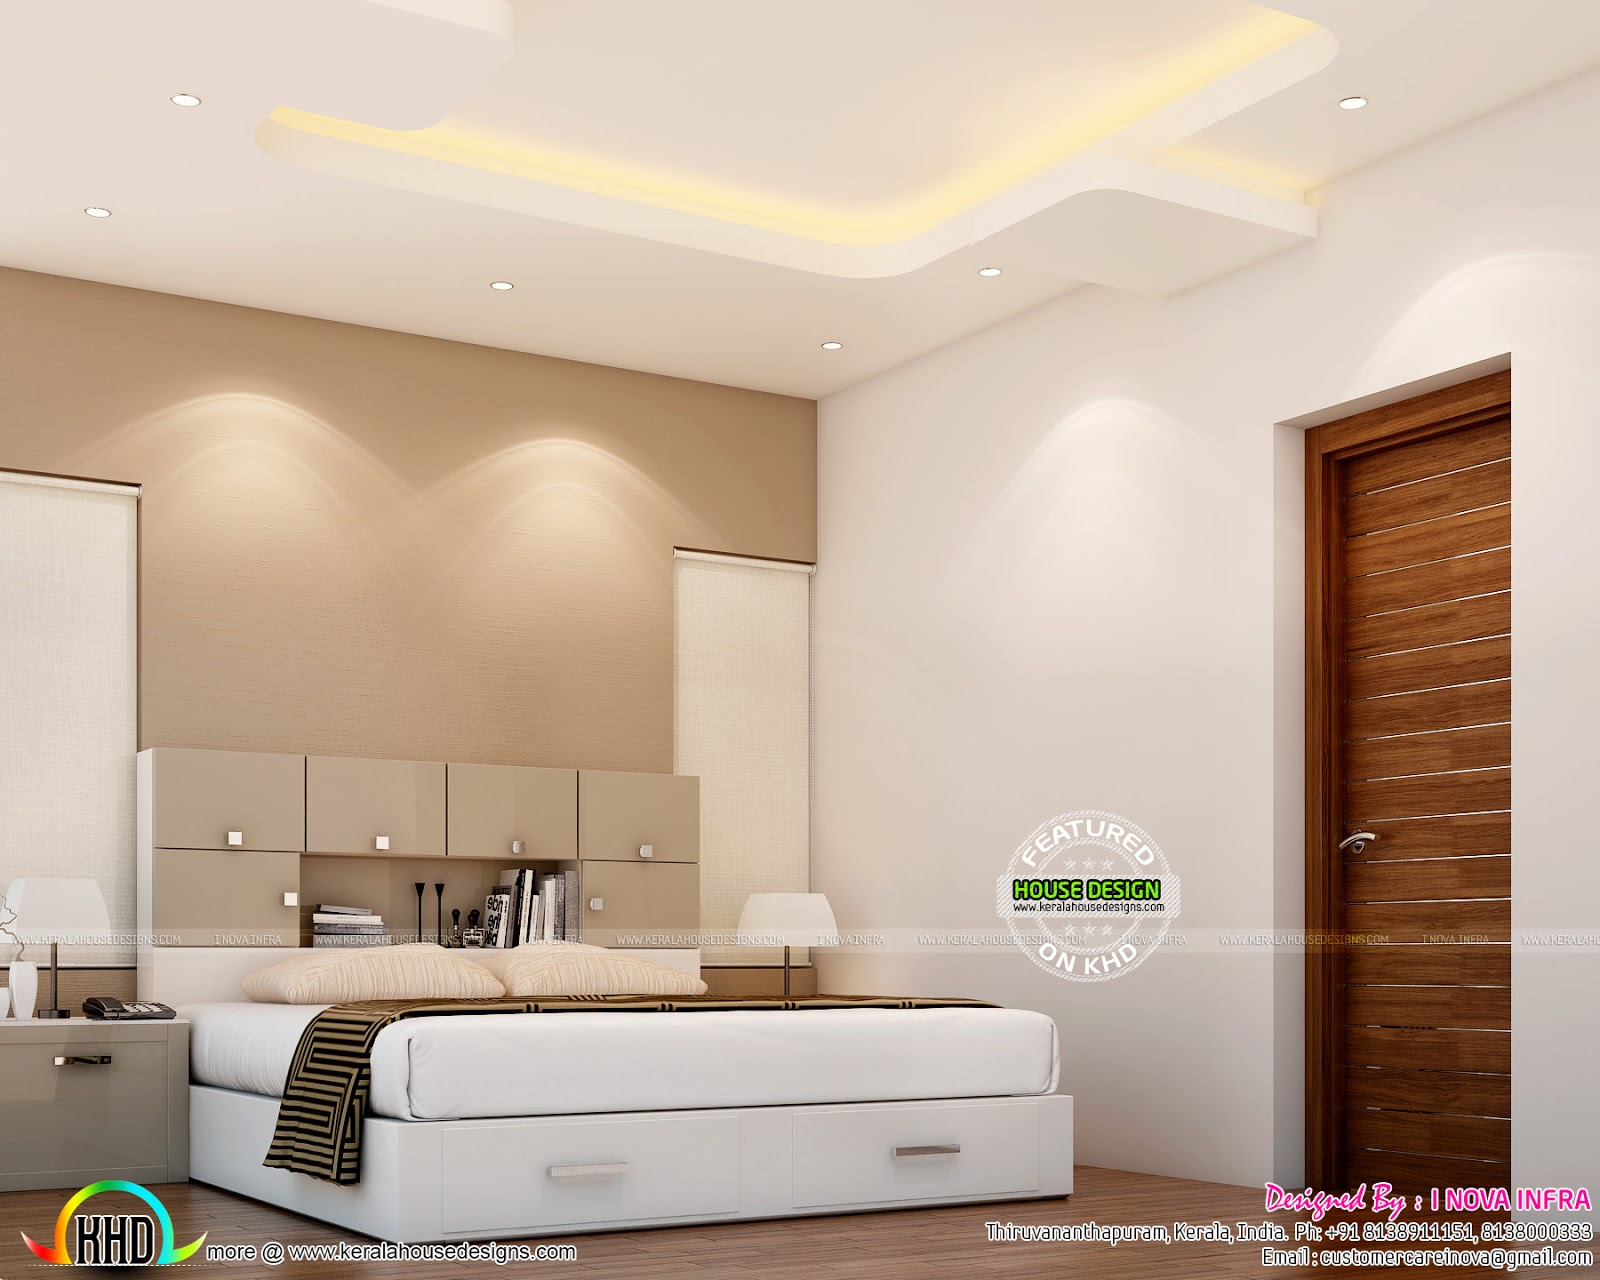 Interior Bed Room Design February 2016 Kerala Home Design And Floor Plans